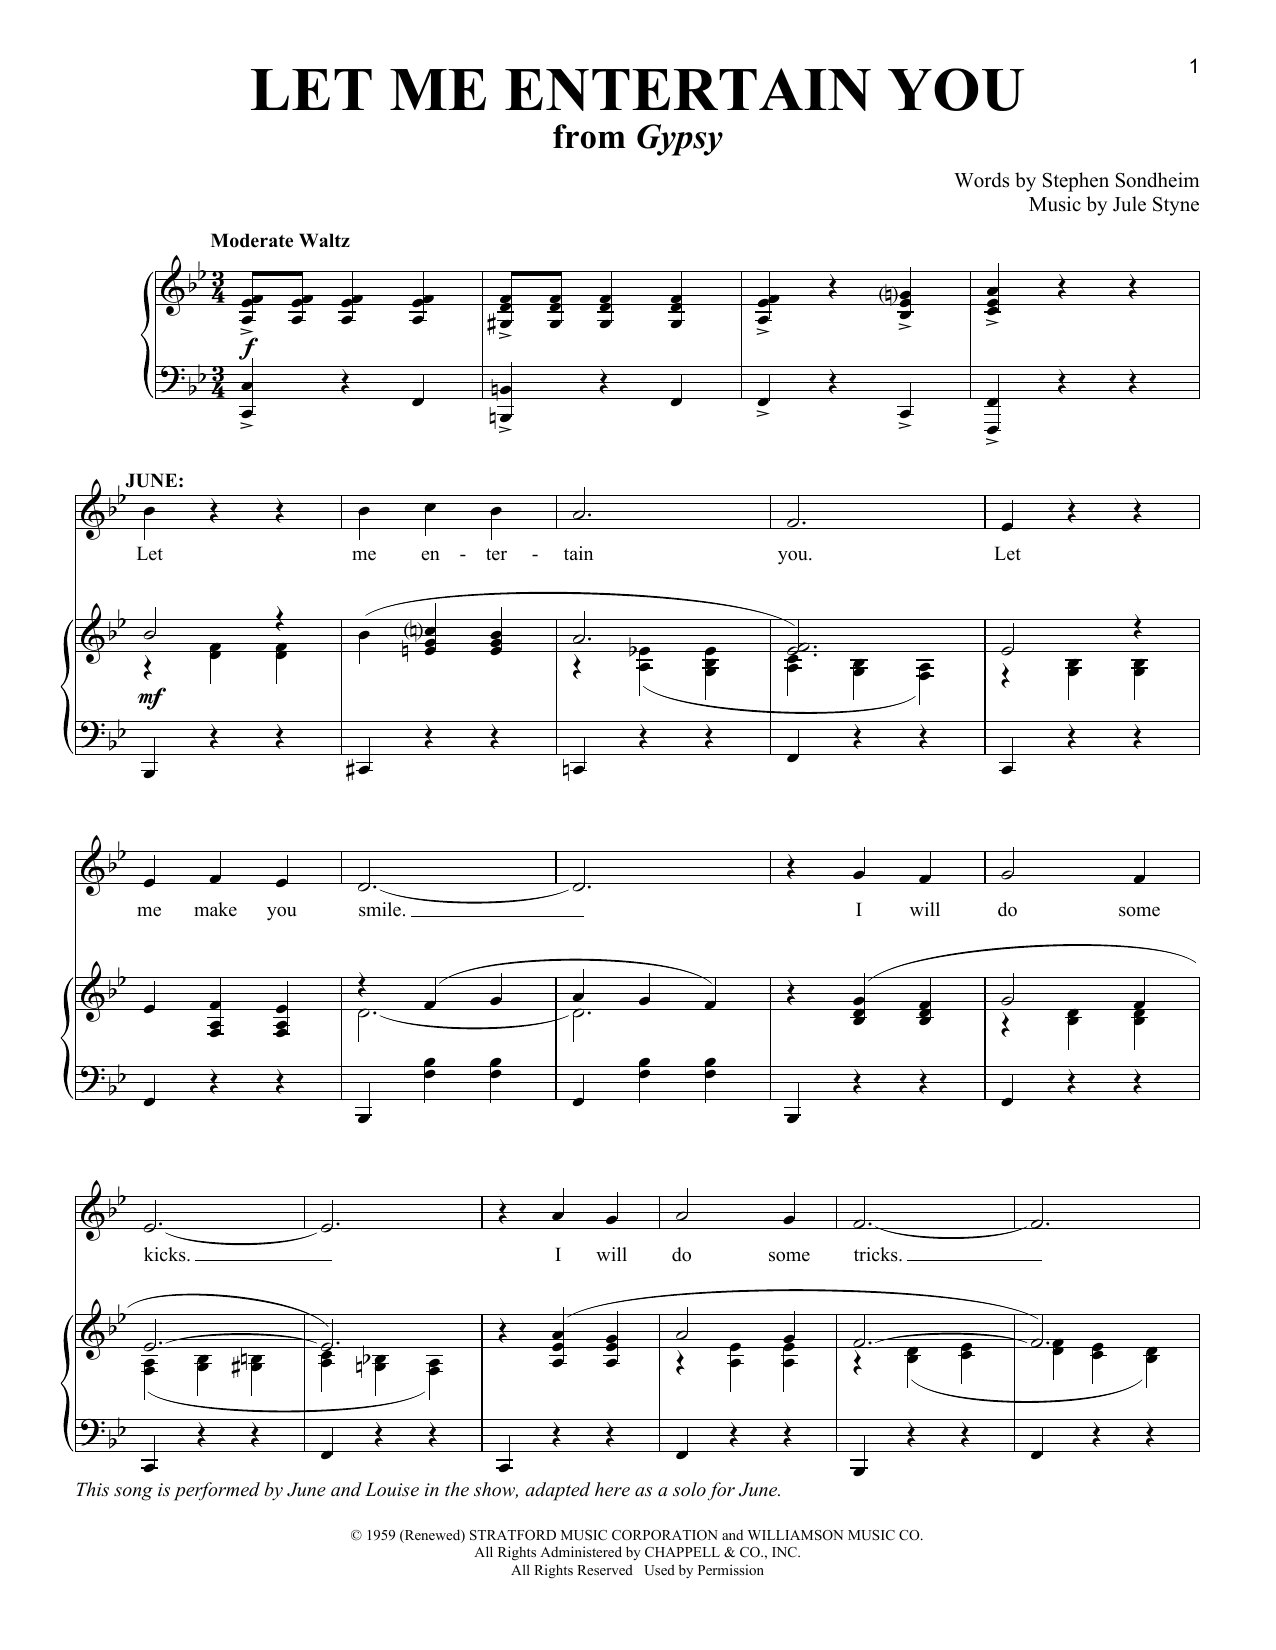 Let Me Entertain You sheet music for voice and piano by Jule Styne